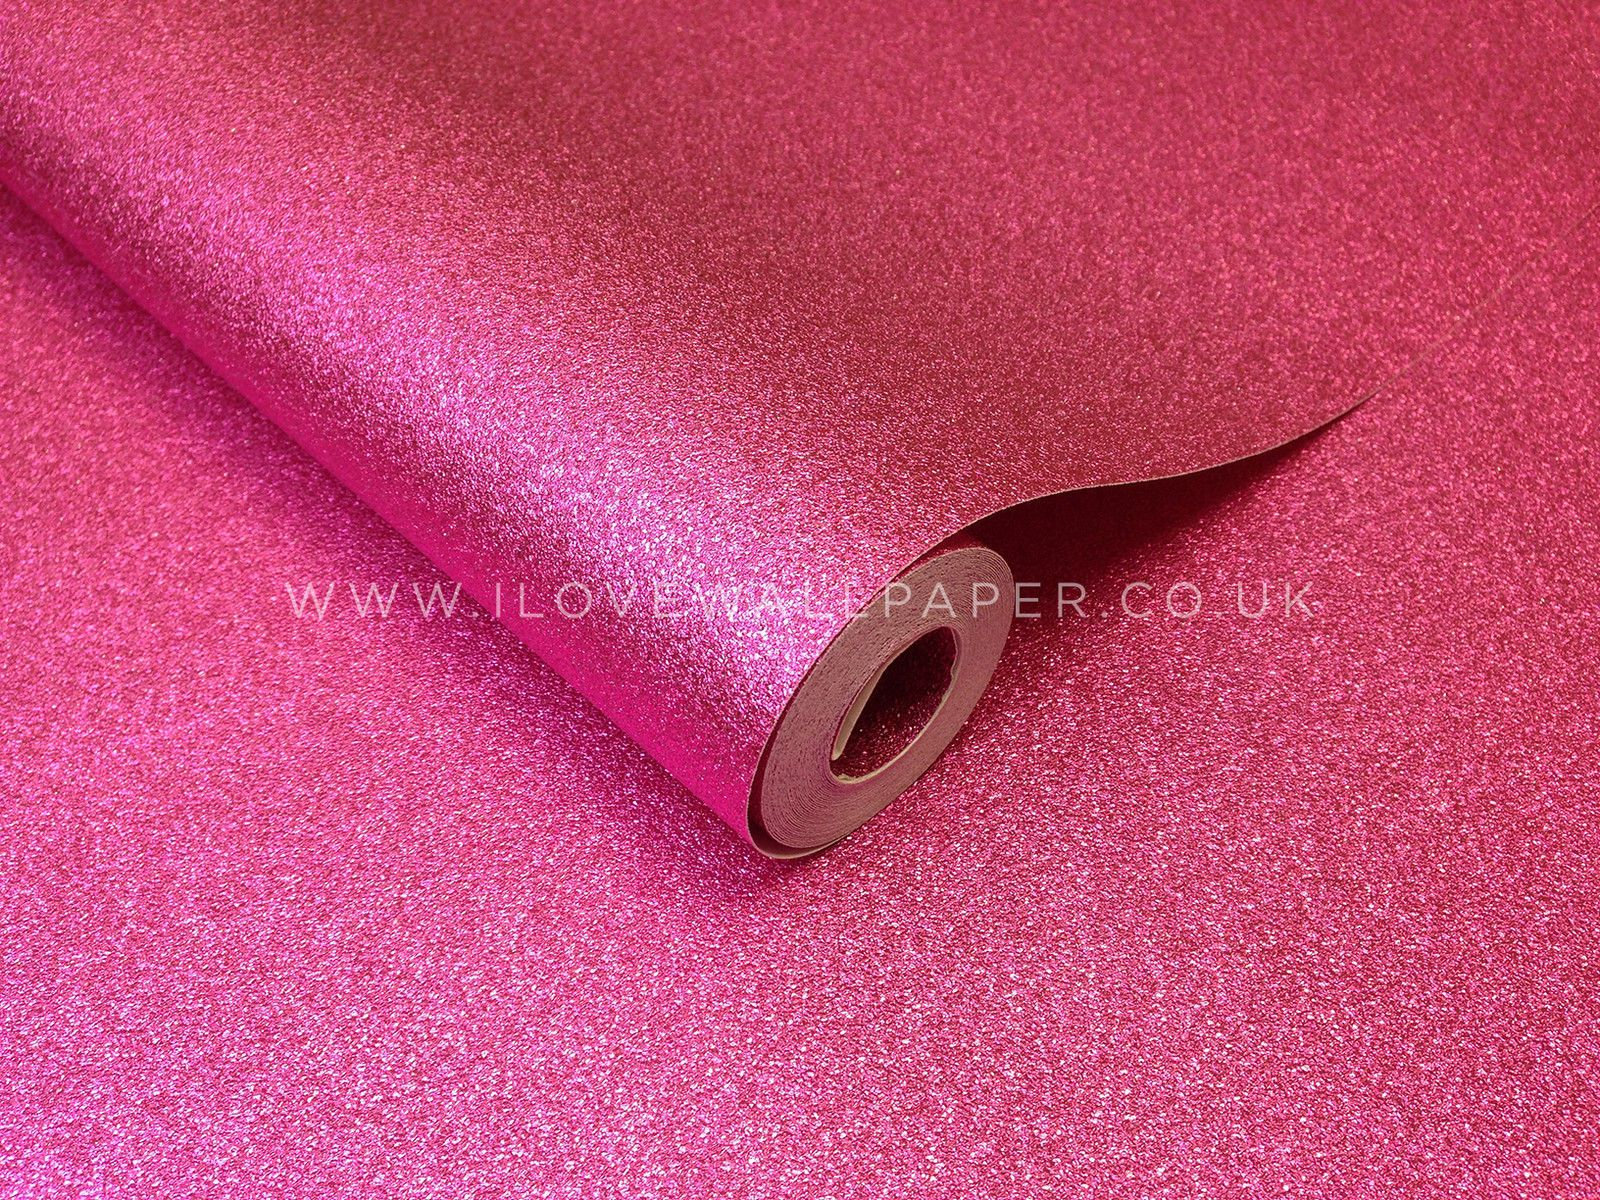 I Love Wallpaper Glamour Glitter Wallpaper Gold Pink Silver Teal